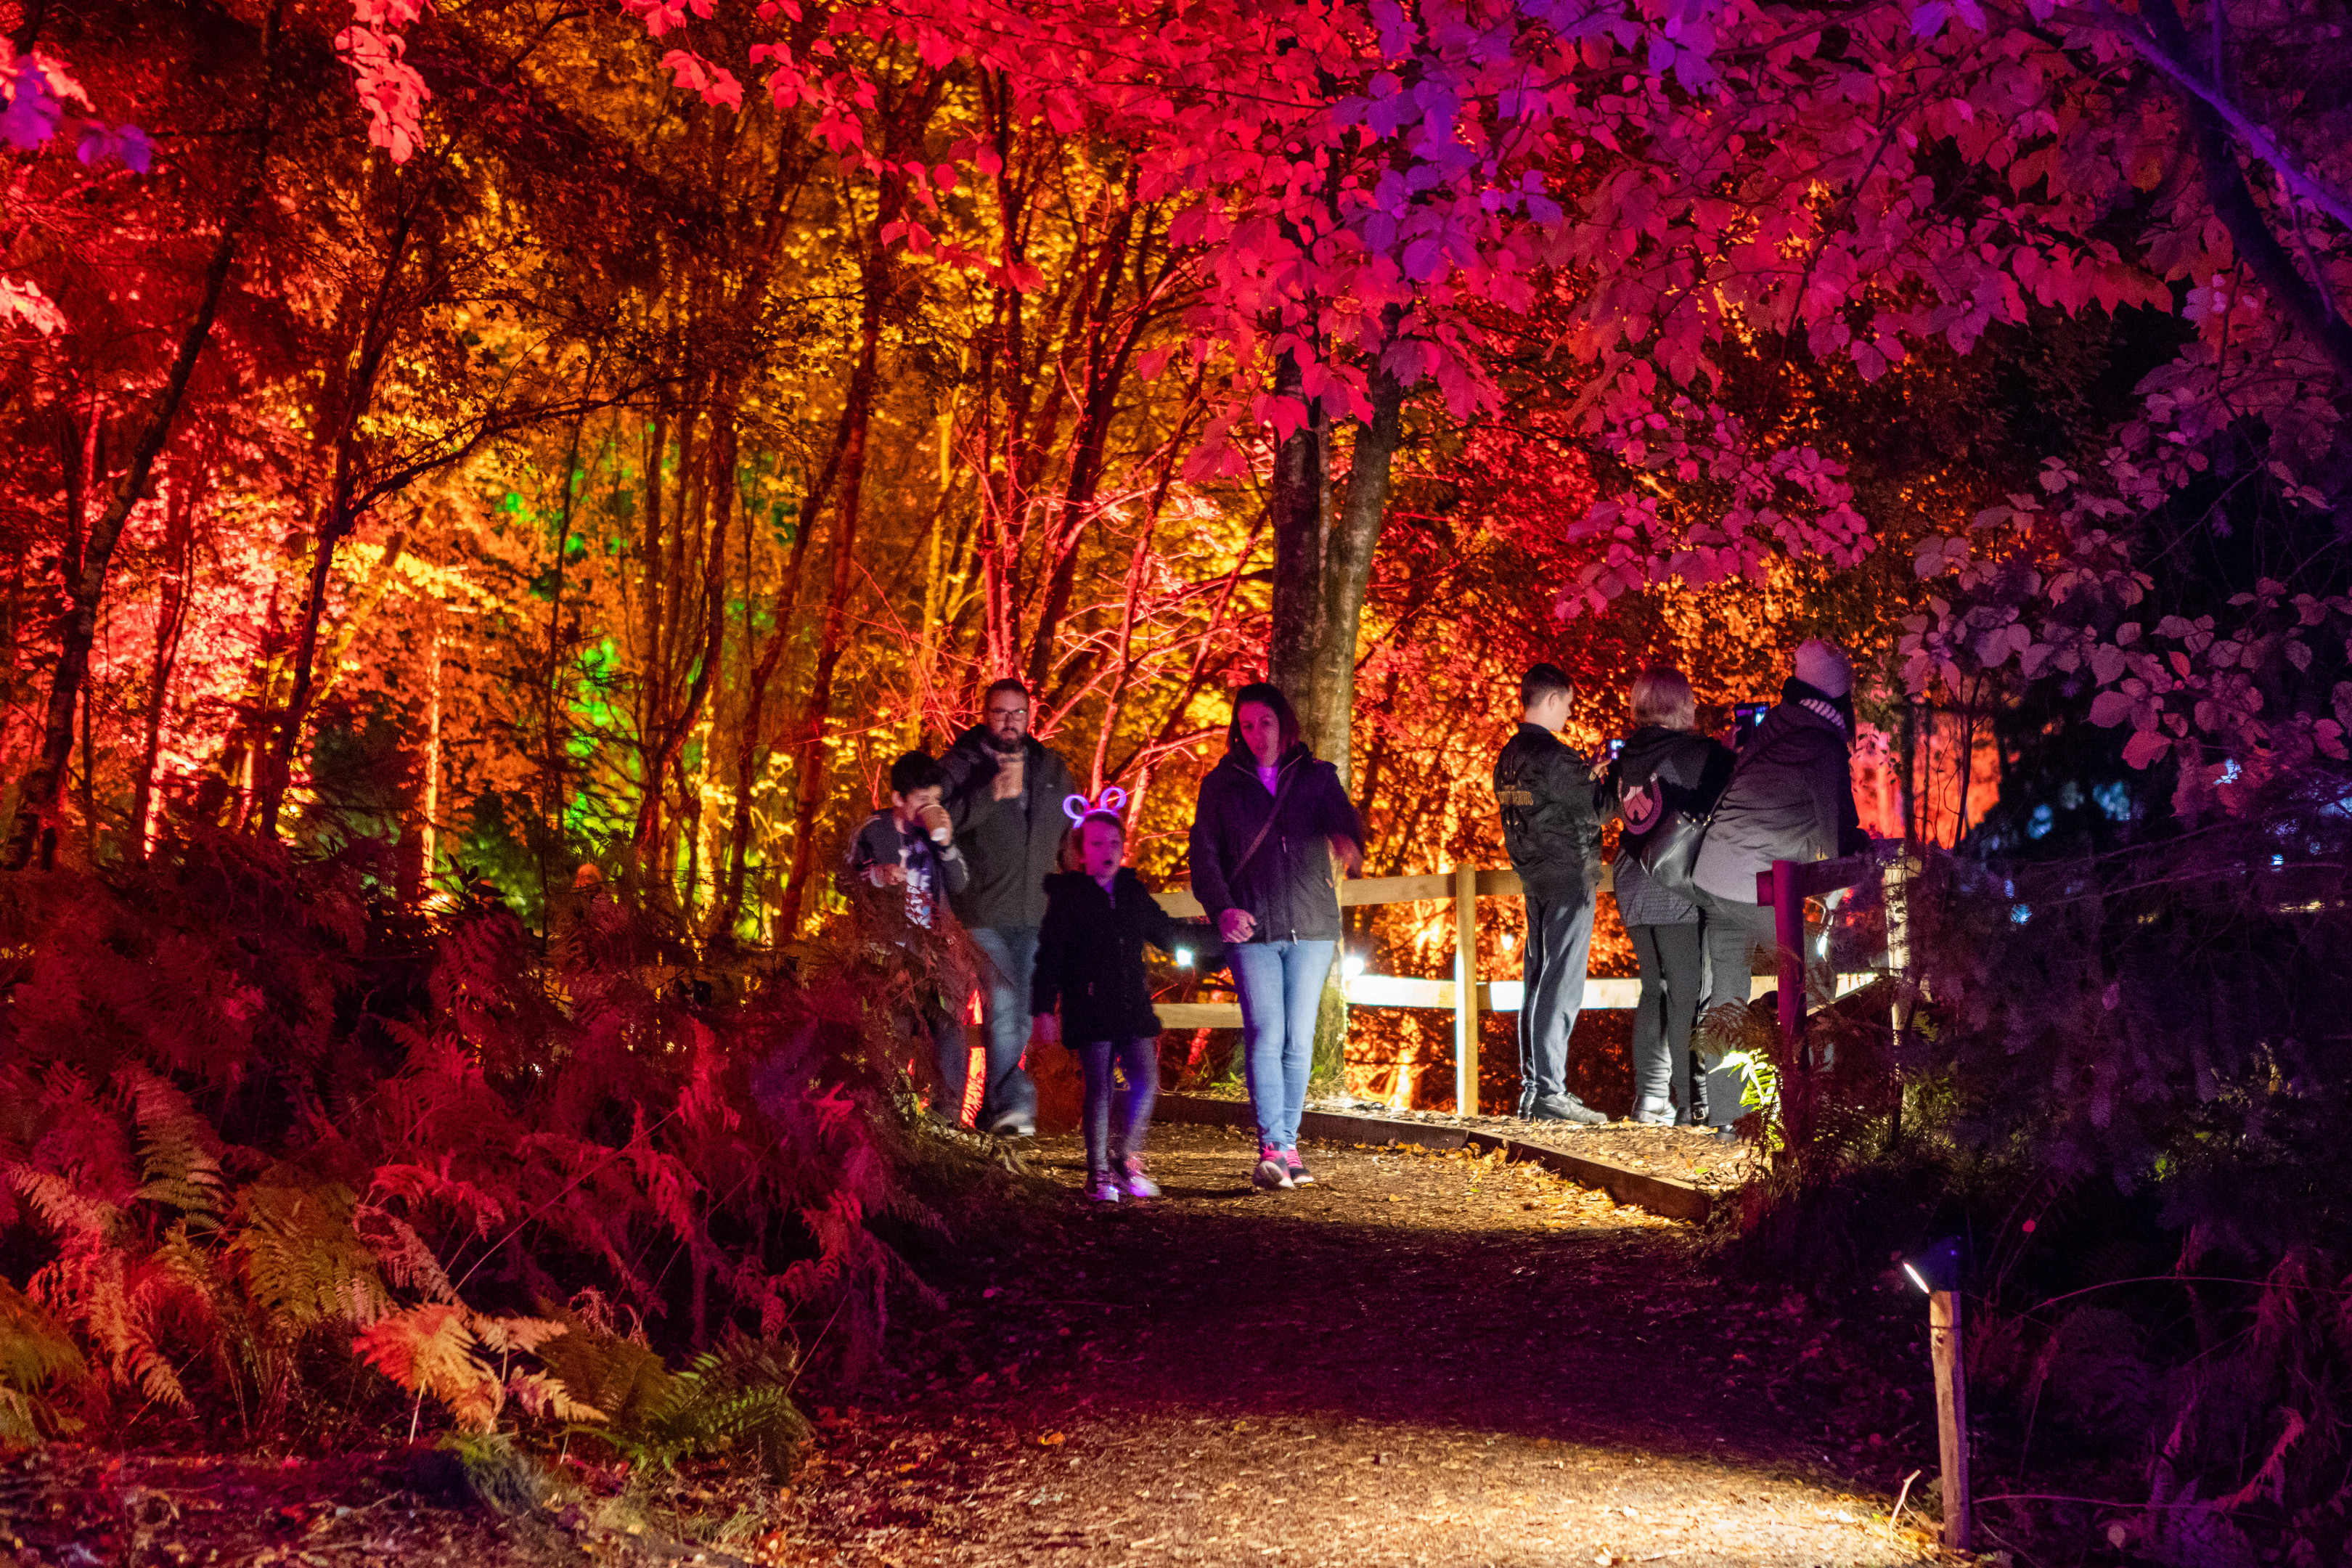 People enjoying the Enchanted Forest in Faskally Woods.